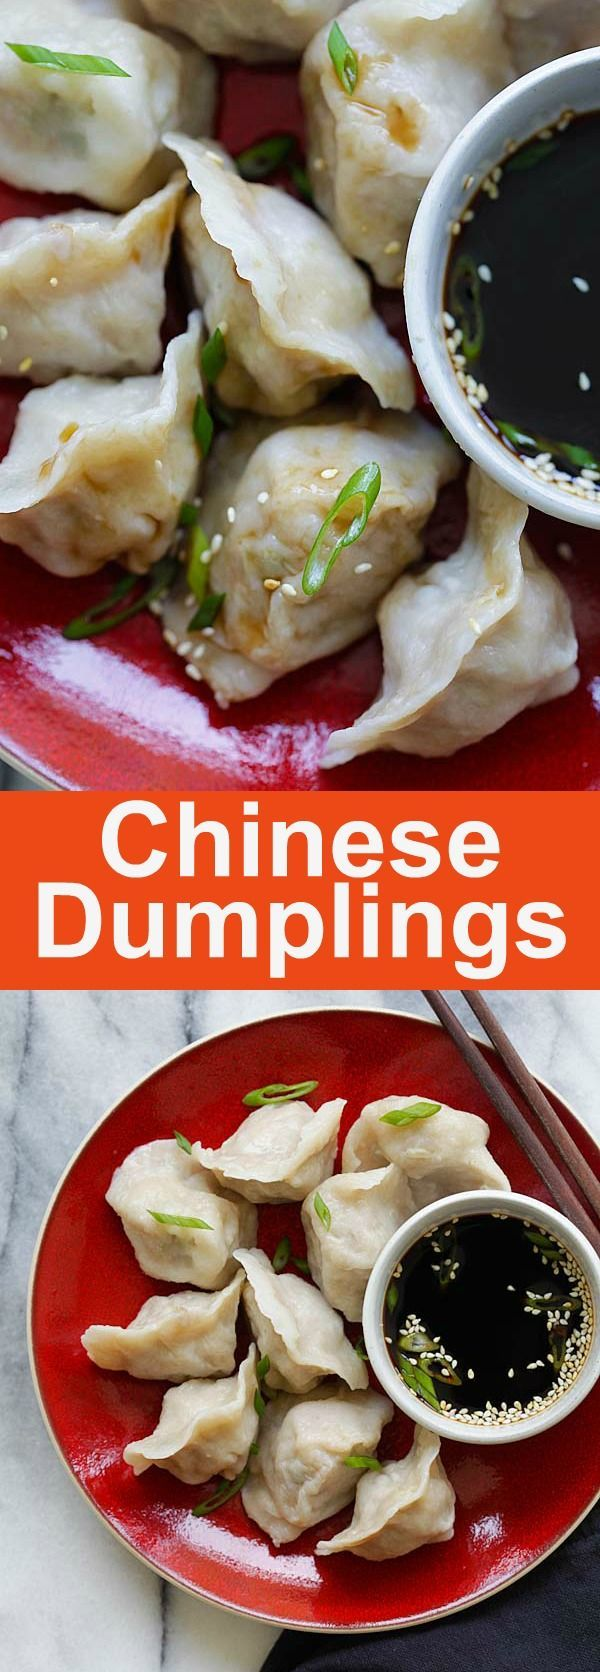 Pork and Chive Dumplings - juicy and delicious Chinese dumplings filled with ground pork and chives. Homemade dumlingi is the best | http://rasamalaysia.com